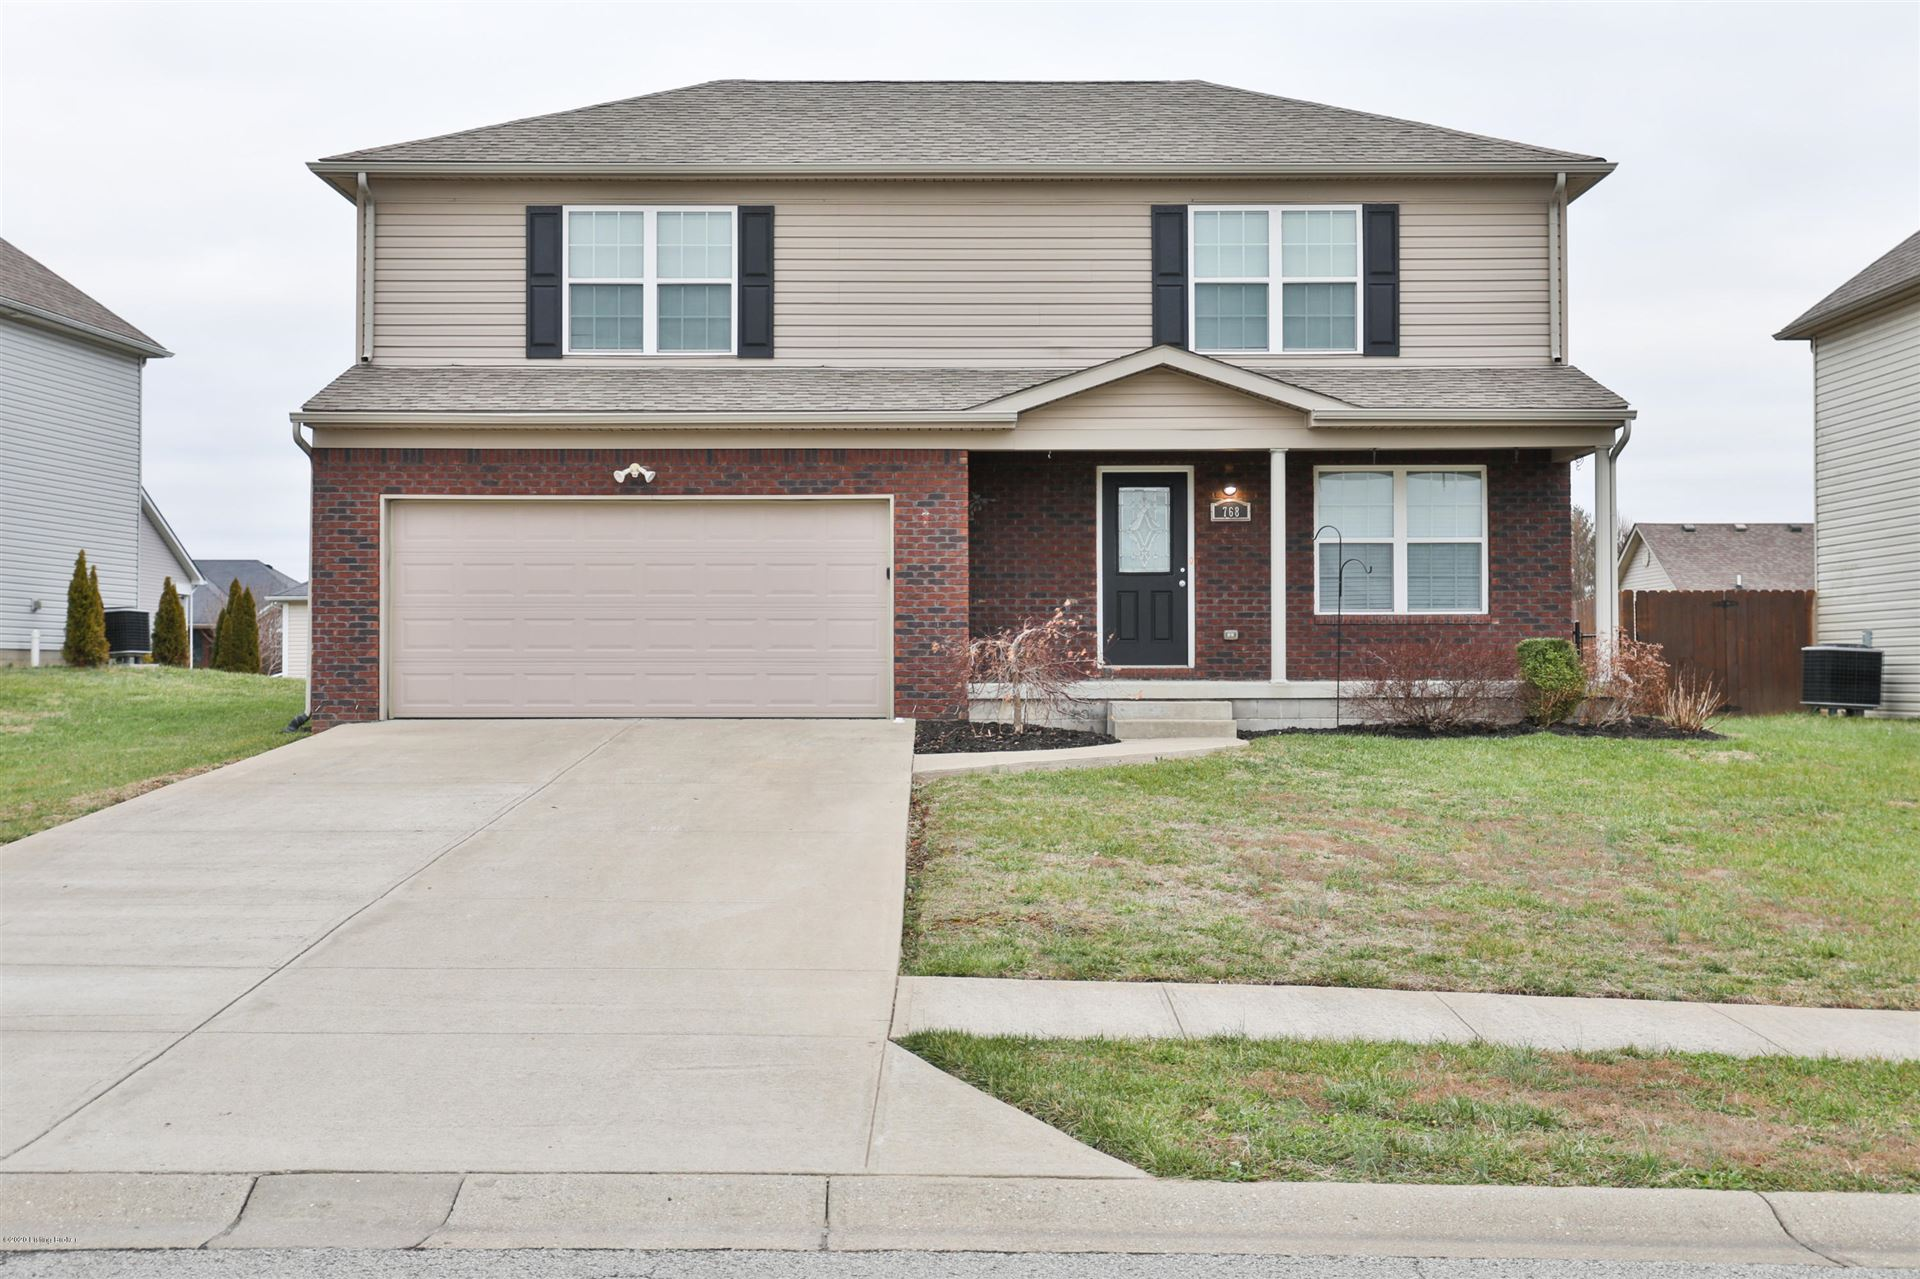 768 Friesian Ct, Shelbyville, KY 40065 - #: 1550182